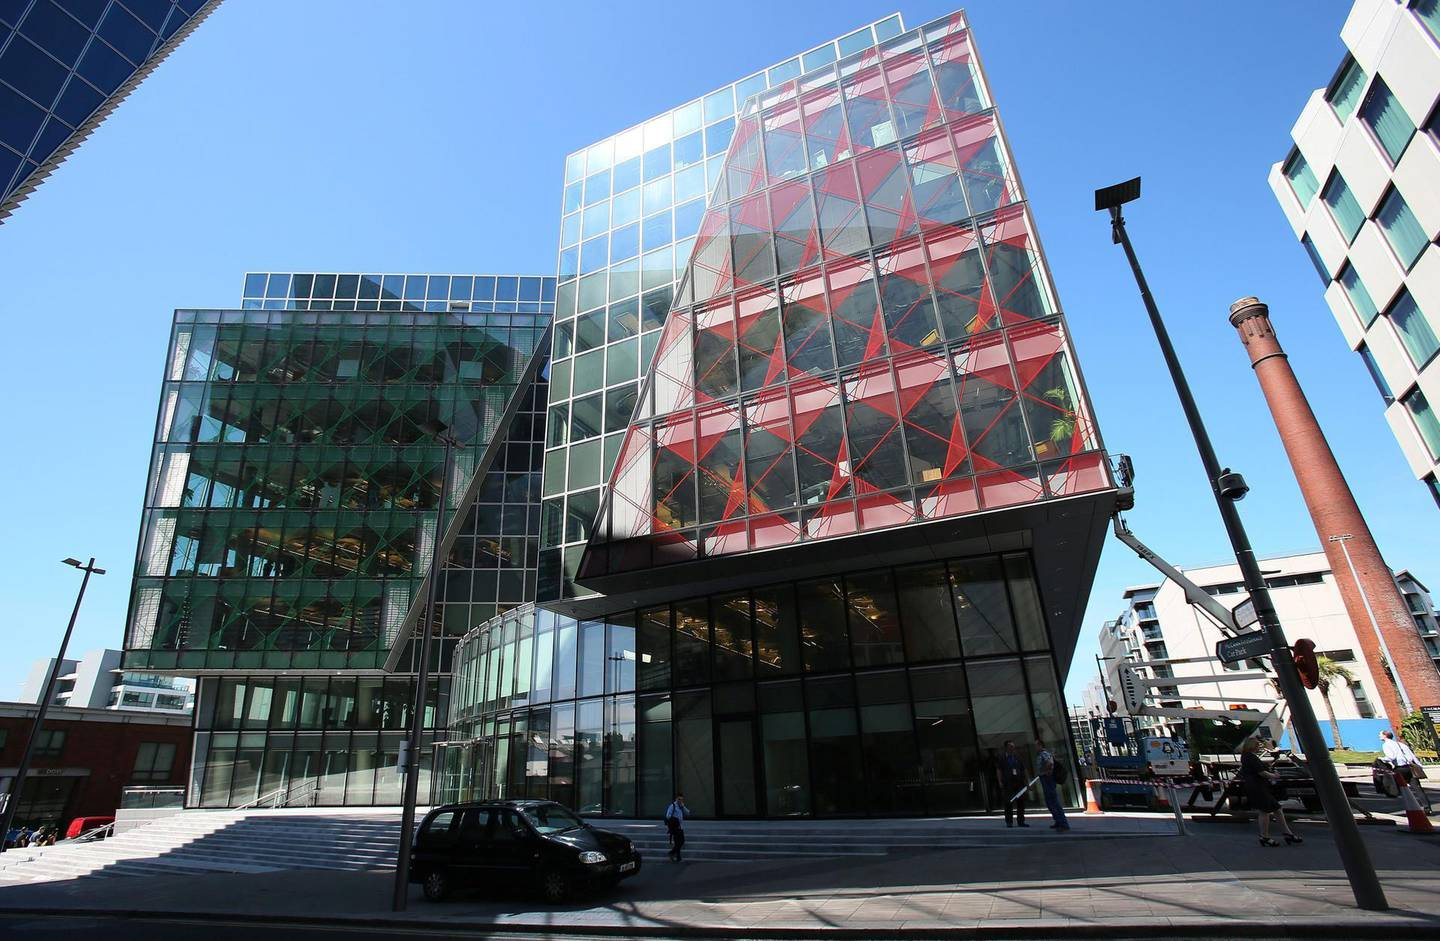 Facebook's offices in Dublin's Grand Canal Square, Docklands.   (Photo by Brian Lawless/PA Images via Getty Images)